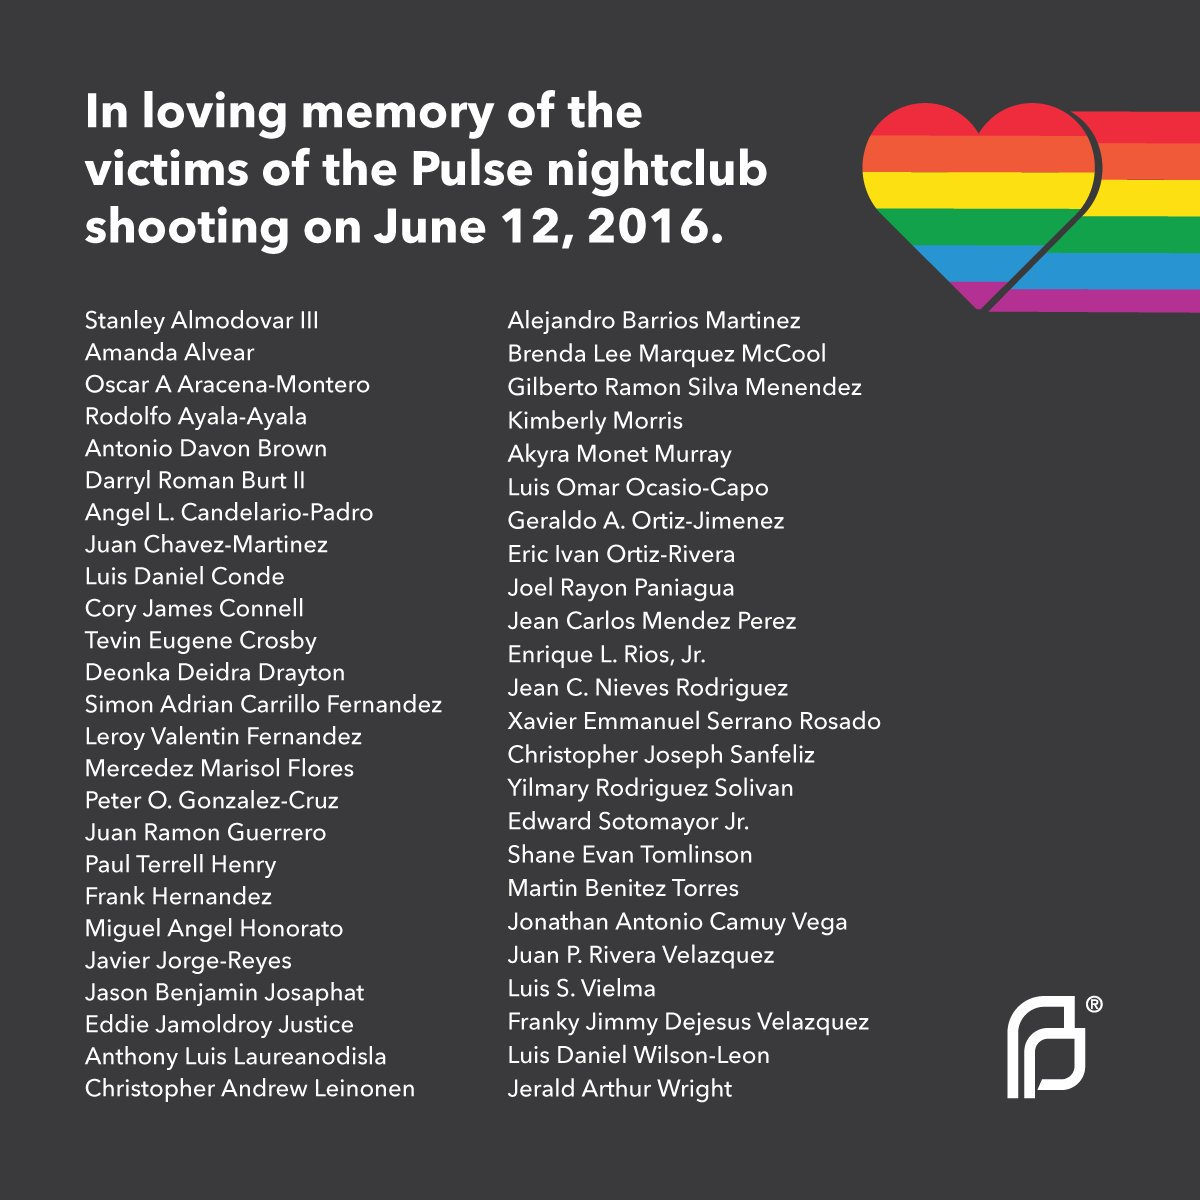 Today, we mourn and remember the victims of the #Pulse nightclub shooting. Their lives and the harrowing impact of this event on LGBTQ and Latinx communities in Florida will not be forgotten.